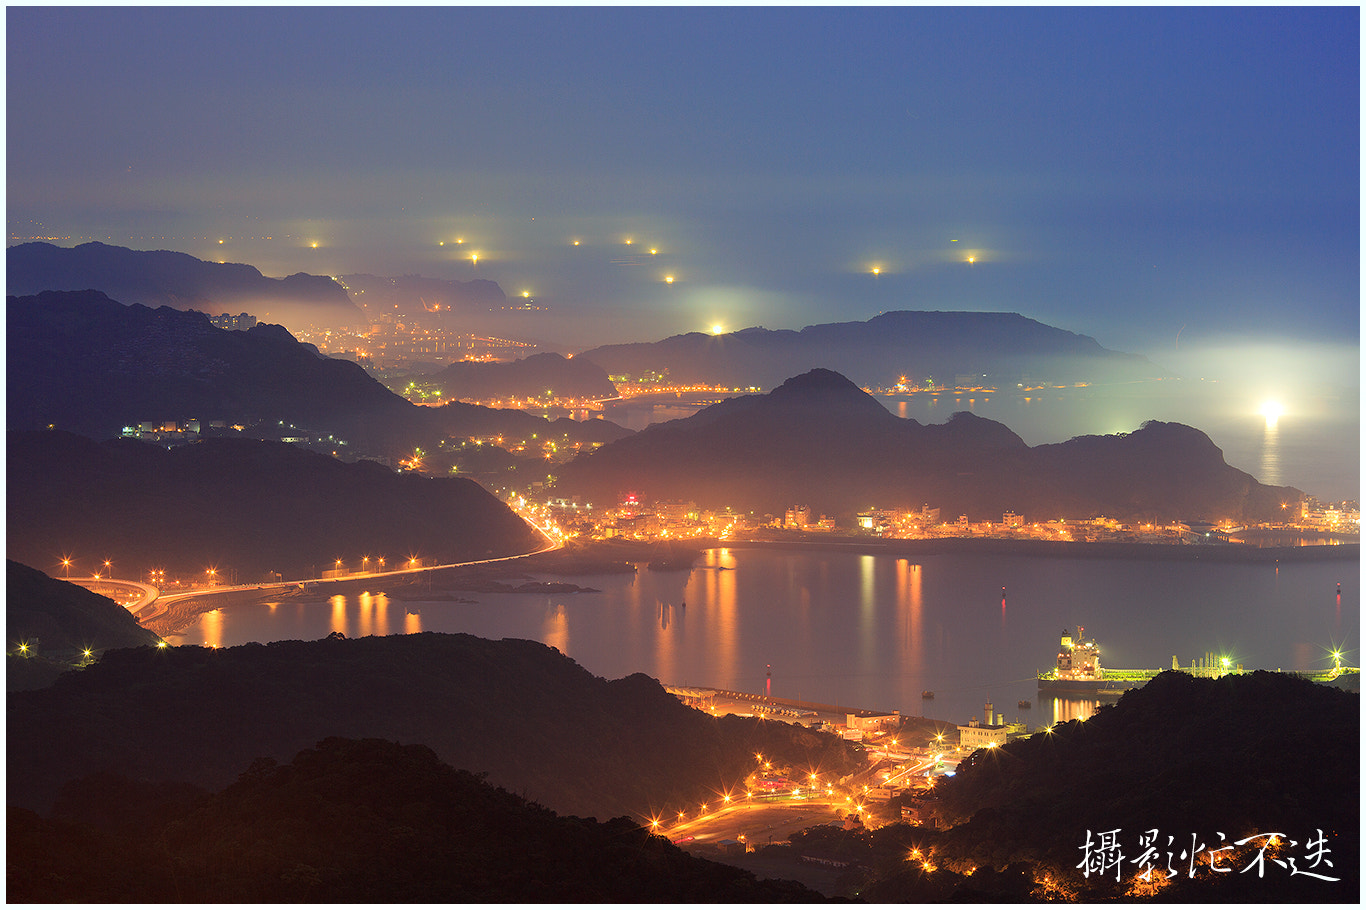 Photograph Harbor in Fog by macg55 on 500px